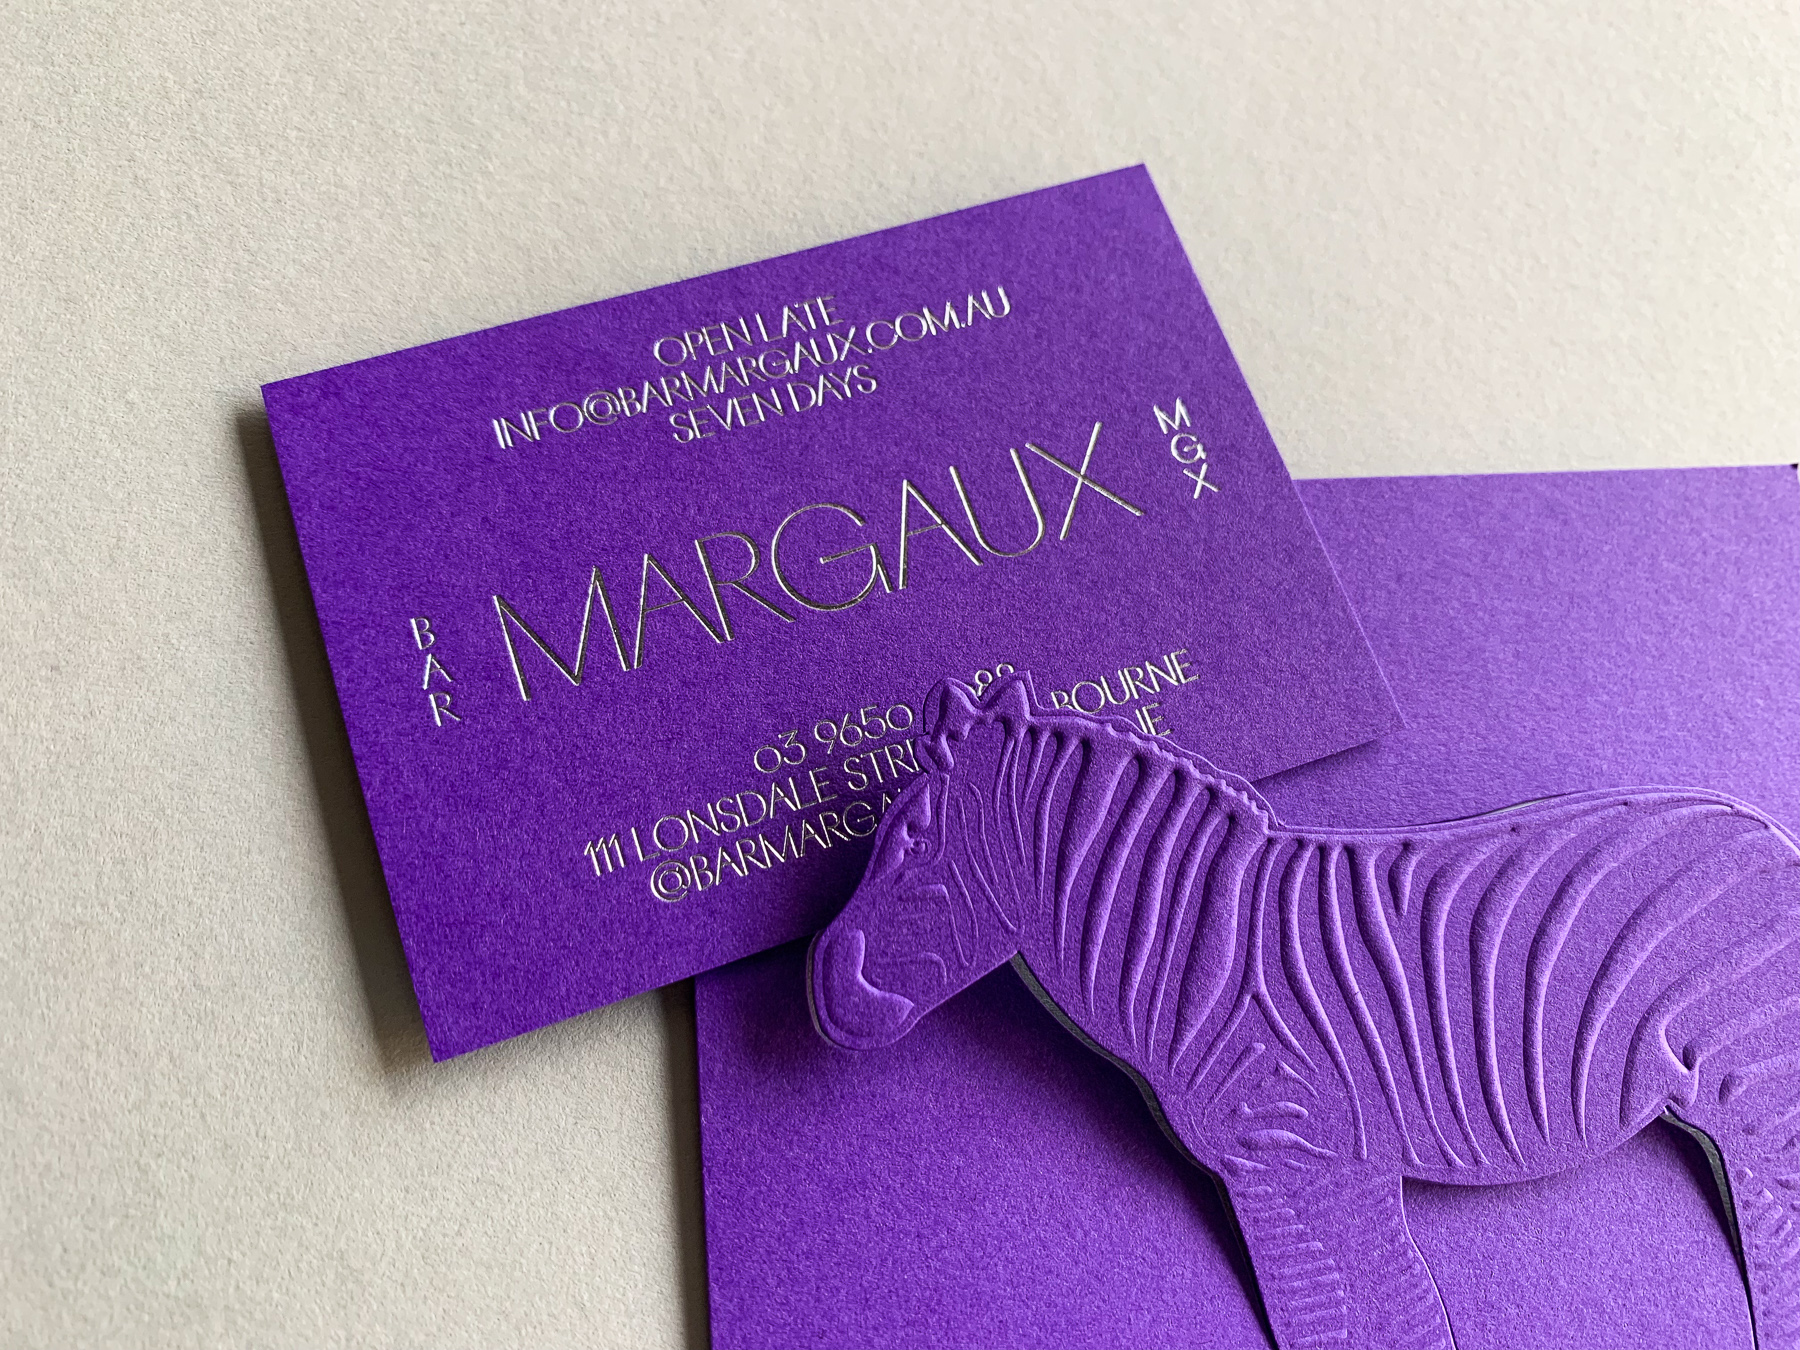 Foil business cards and embossed bill folds for Bar Margaux on Colorplan Purple 270gsm 2